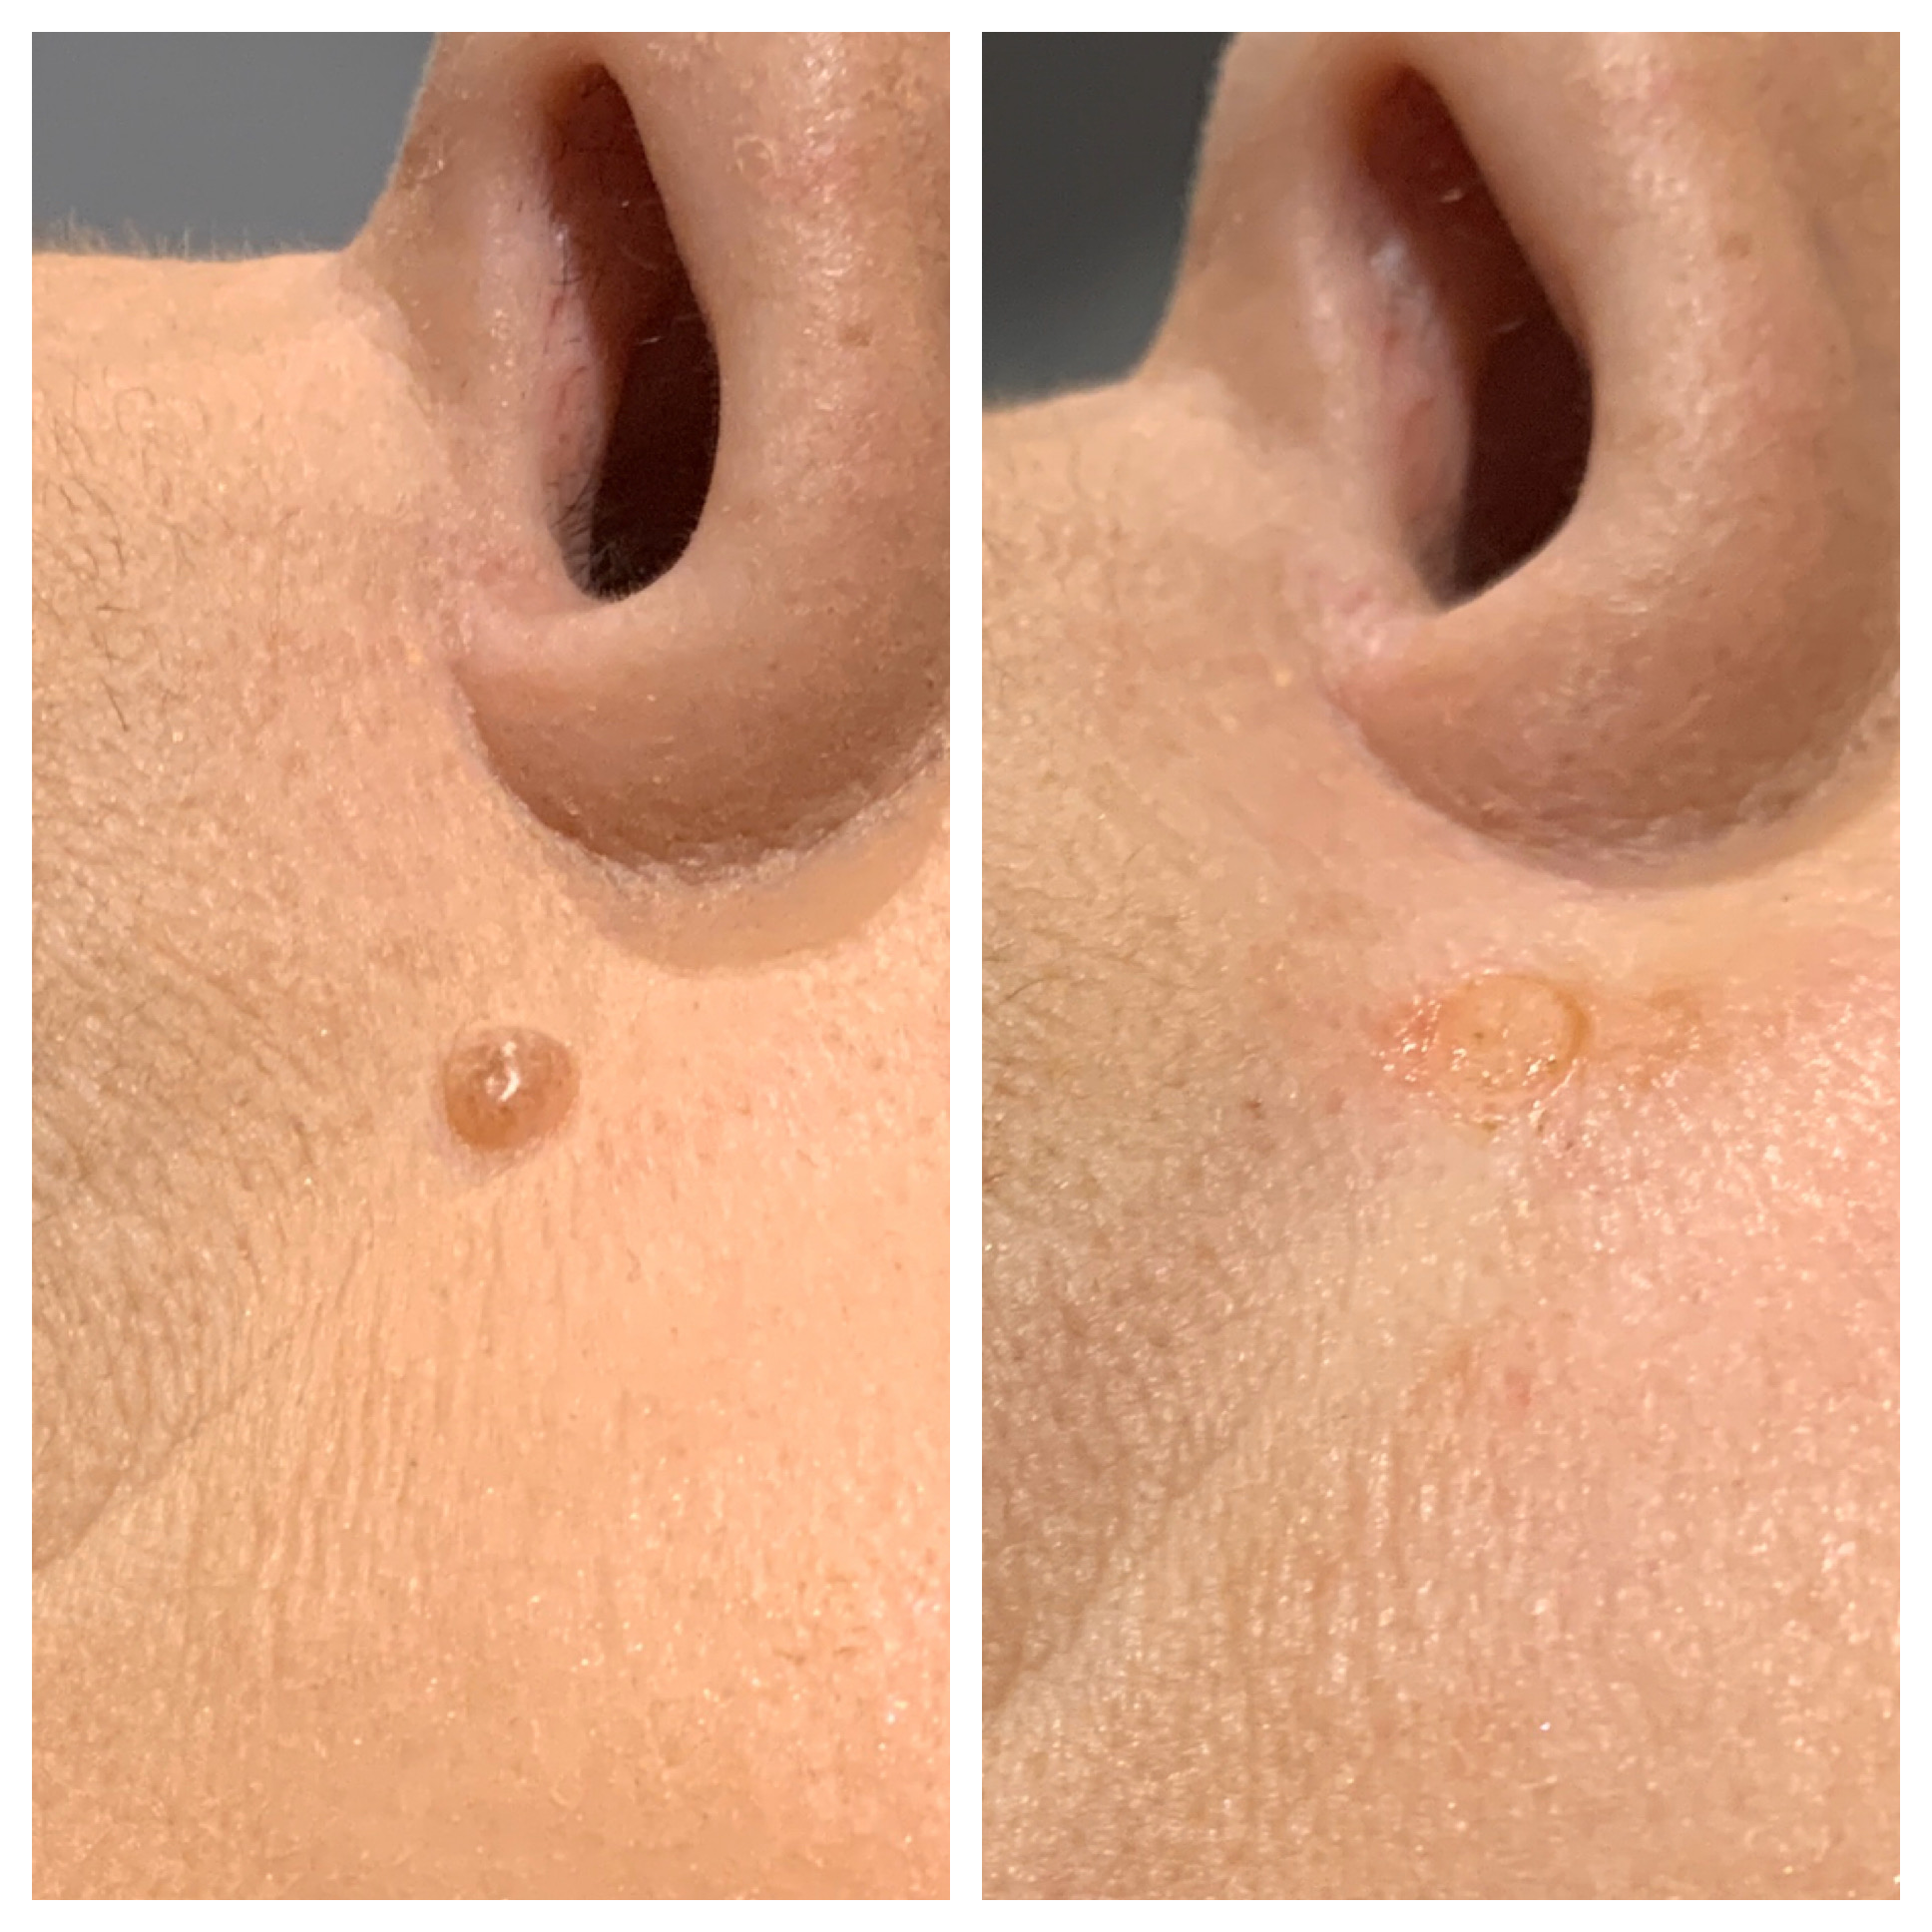 Mole Removal Skin Tag Removal Portland Or